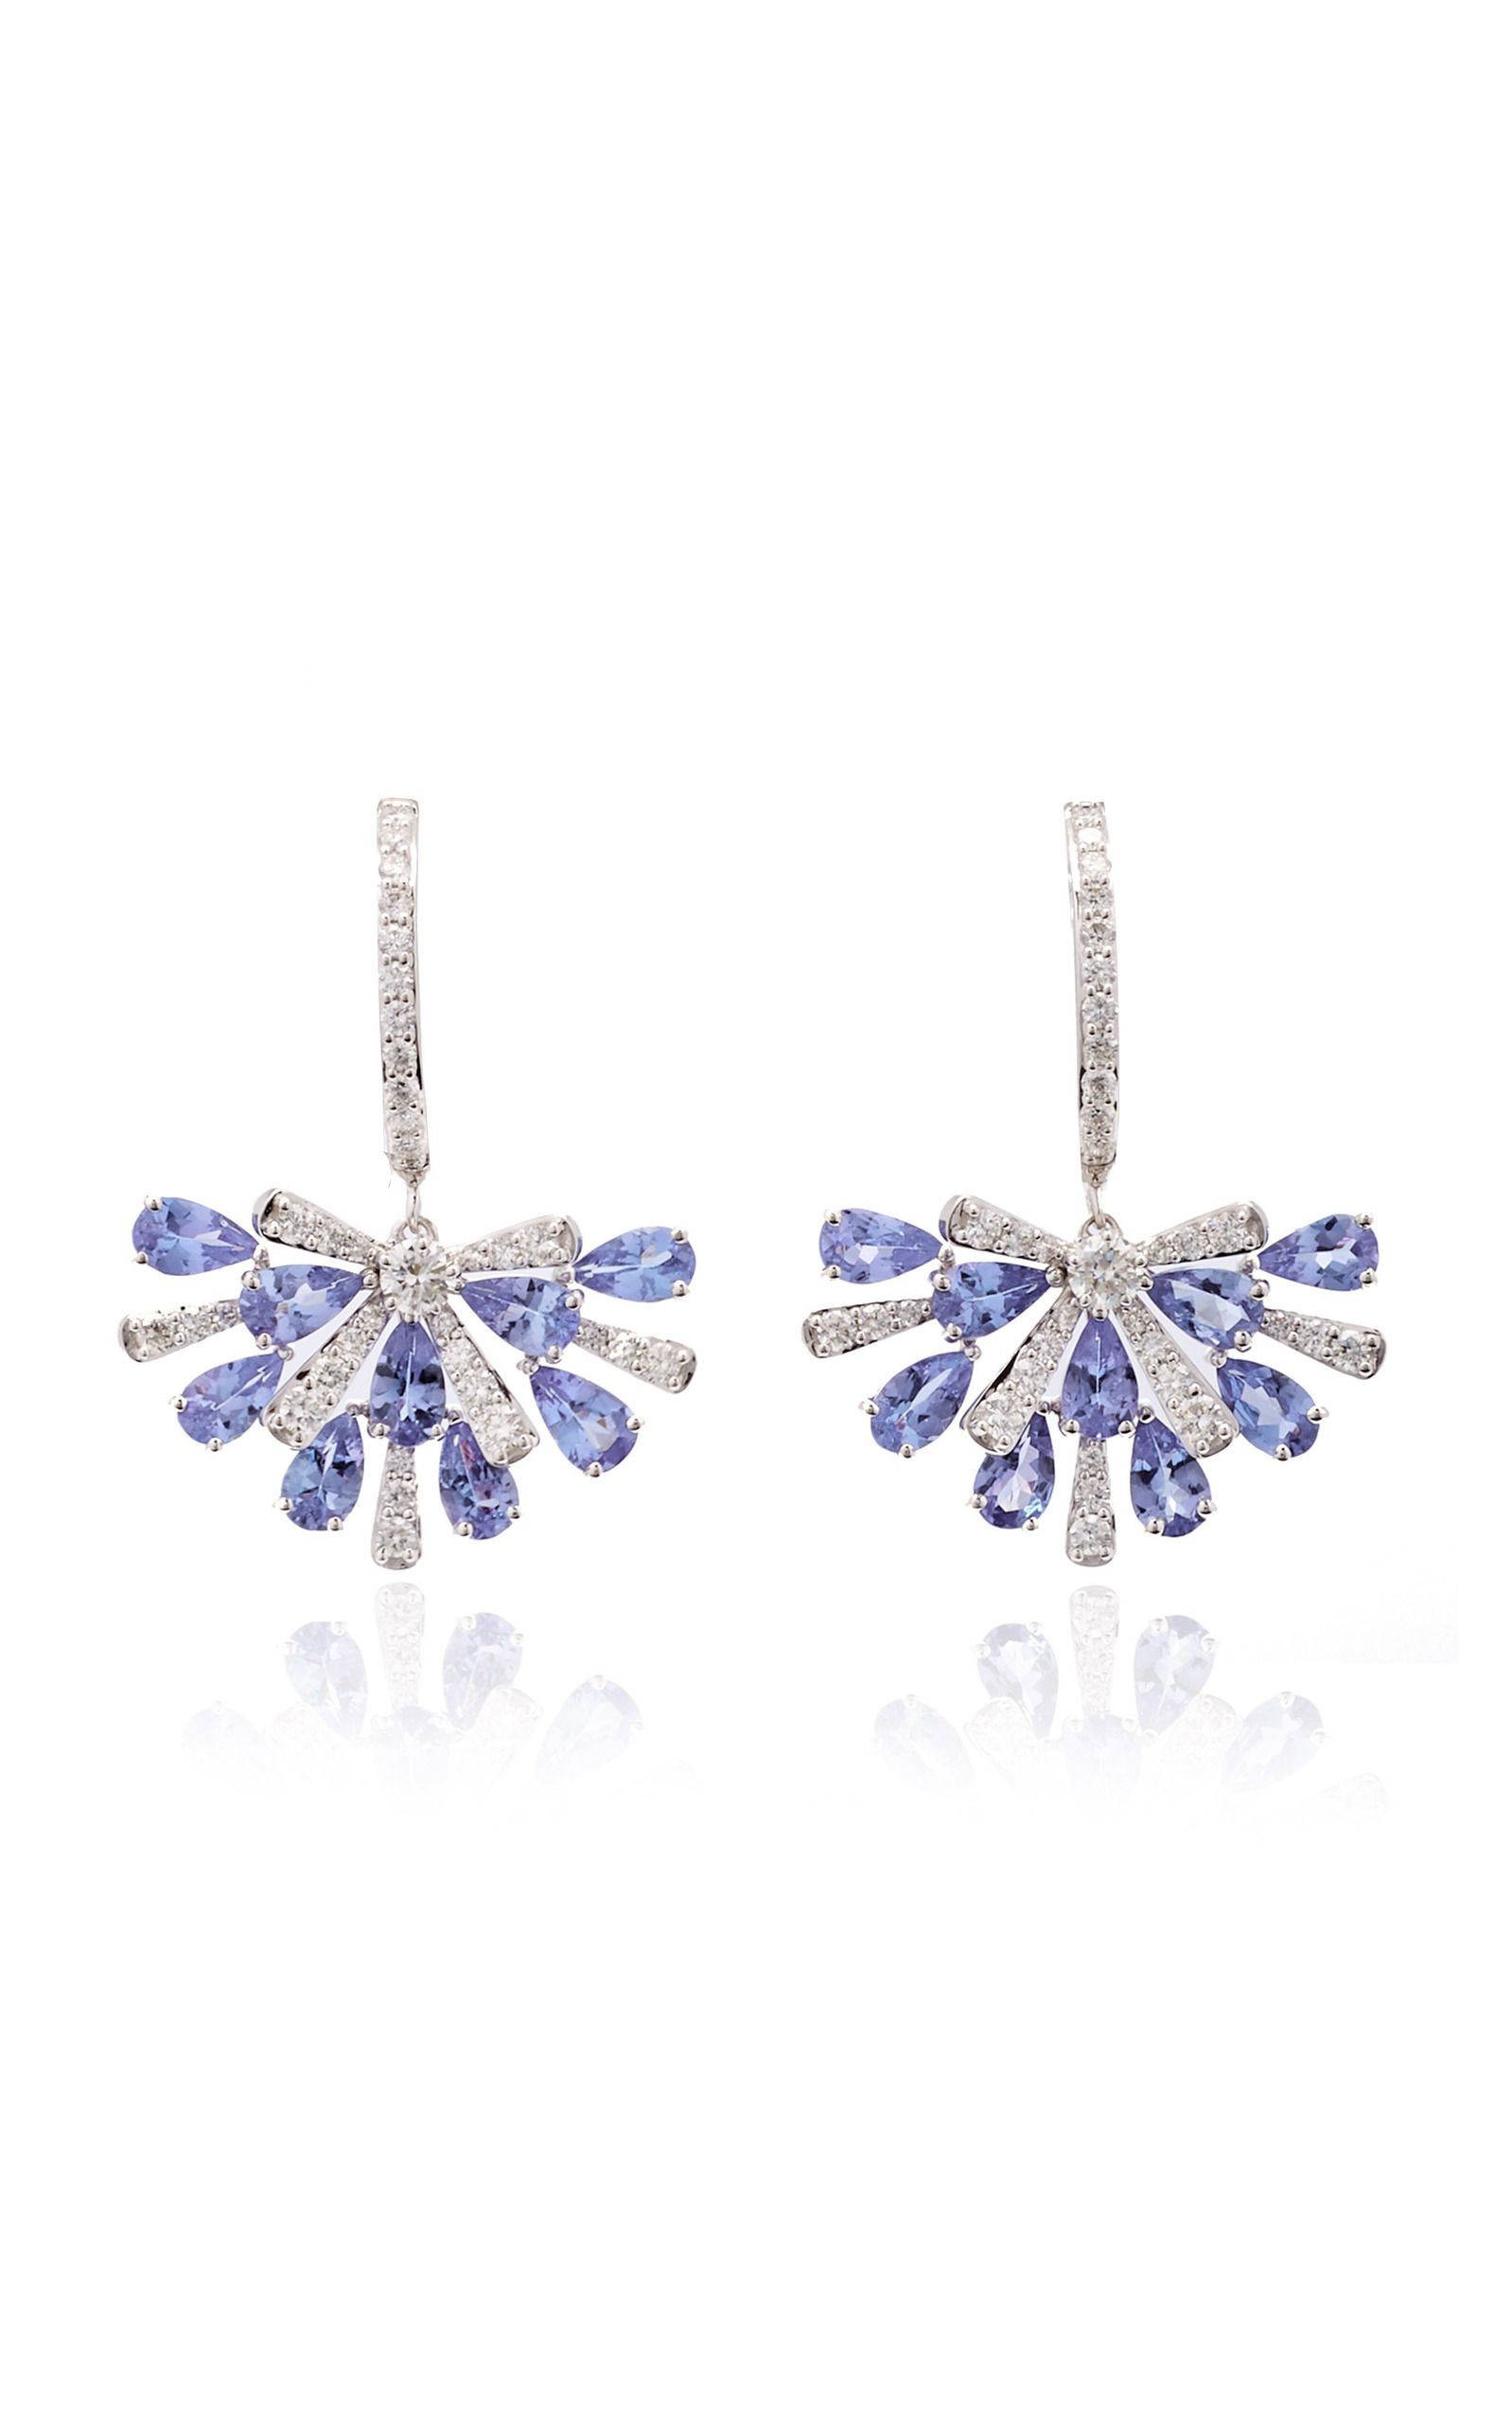 diamond envira blog earrings archive michael platt tanzanite and